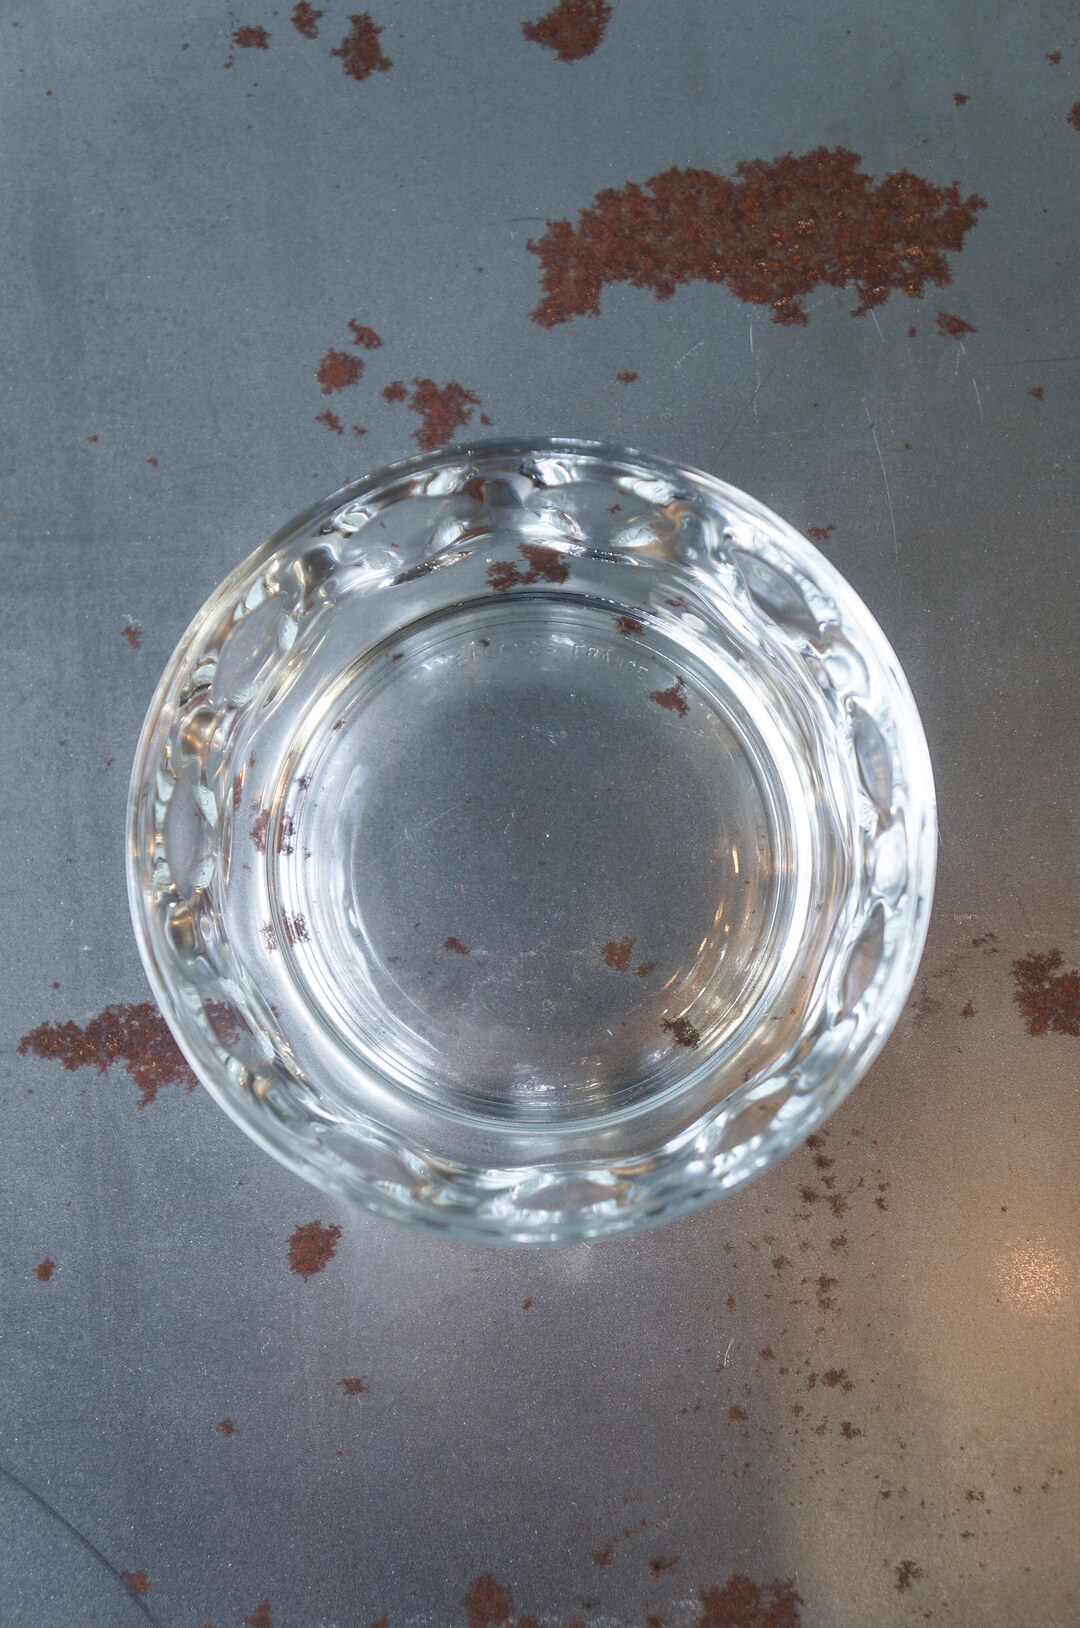 arcoroc Bowl Glass Ware Made In France/アルコロック ボウル ガラス フランス製 食器 レトロ 1